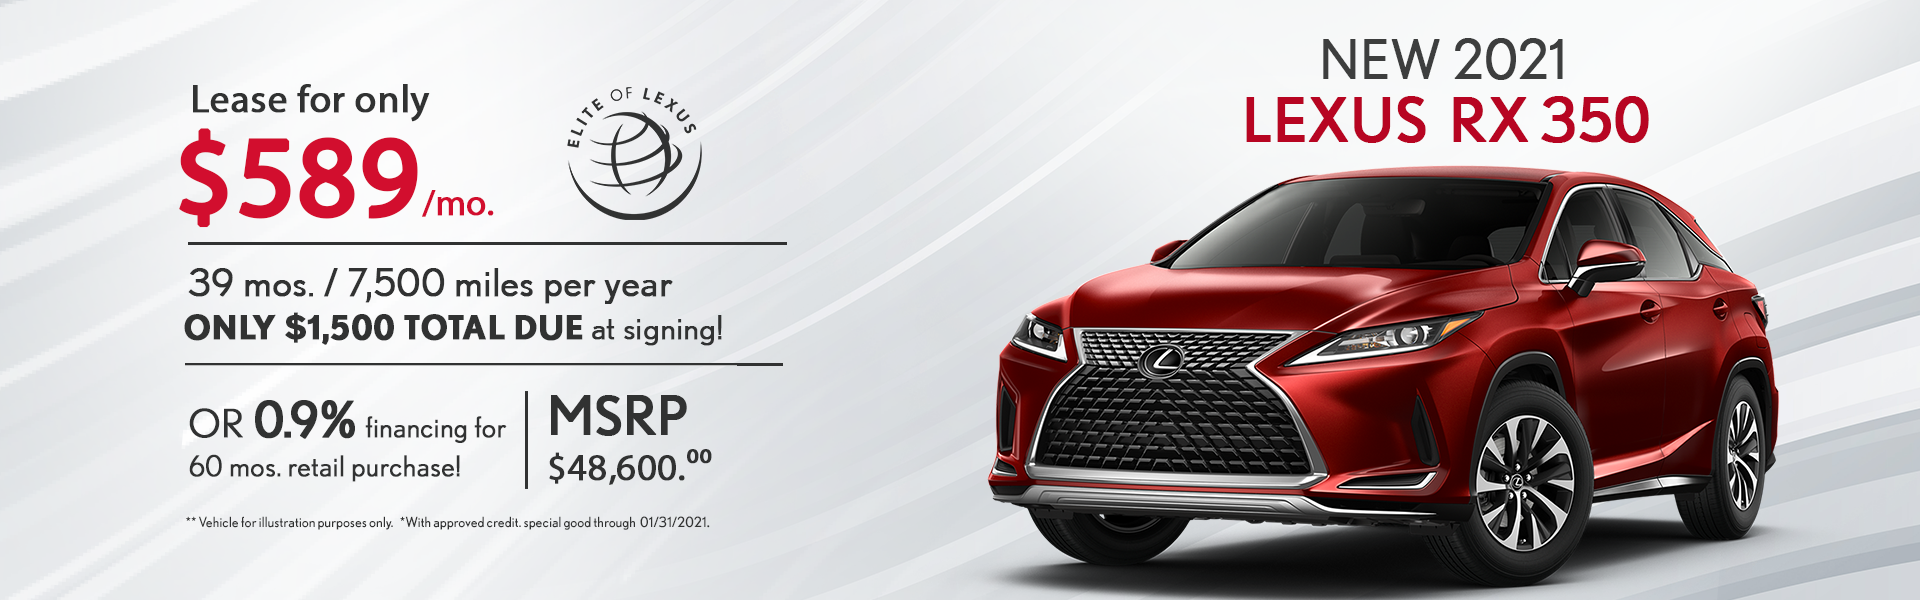 January Lexus Lease Specials RX 350